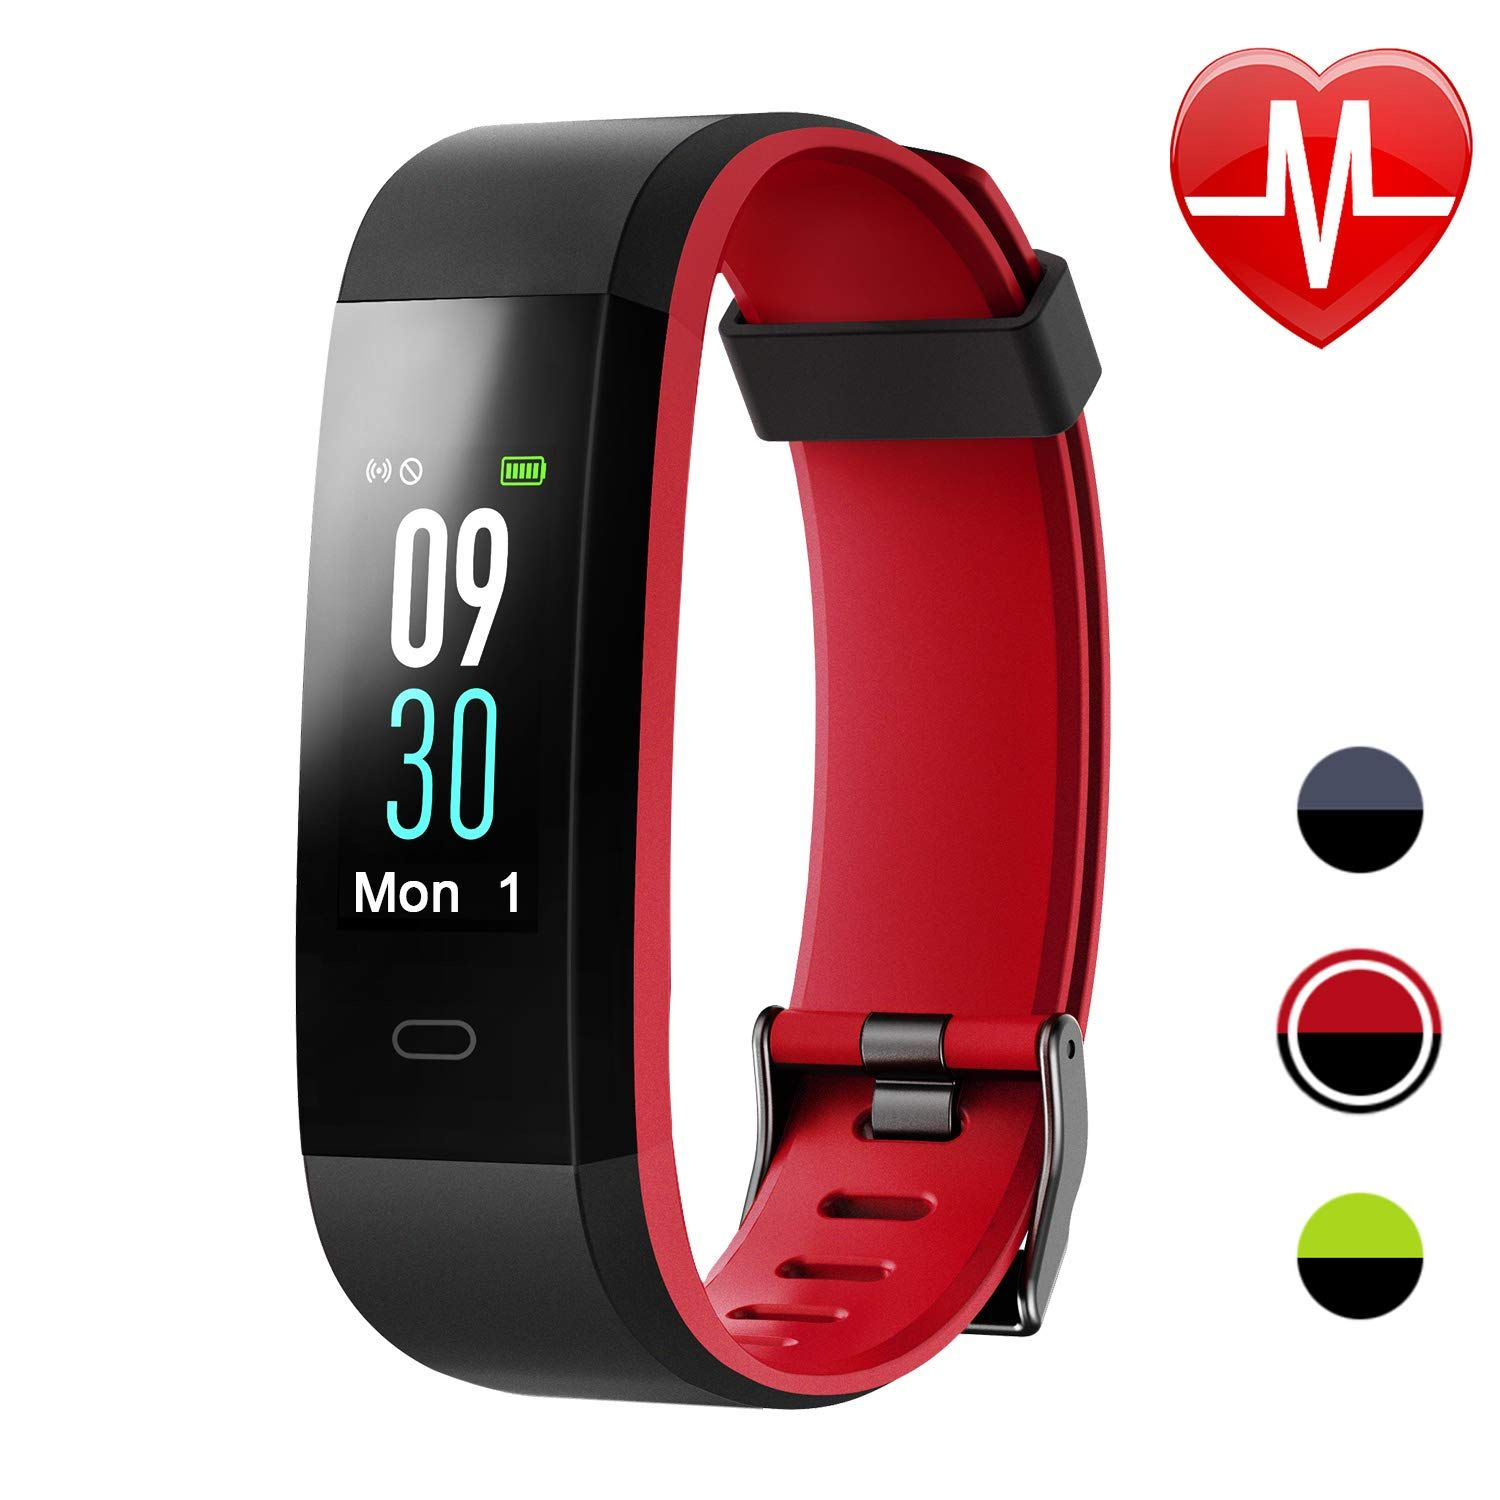 Letsfit Fitness Tracker With Heart Rate Monitor Color Screen Smart Watch With Sleep Monitor Step Count In 2020 Fitness Tracker Pedometer Watch Activity Tracker Watch